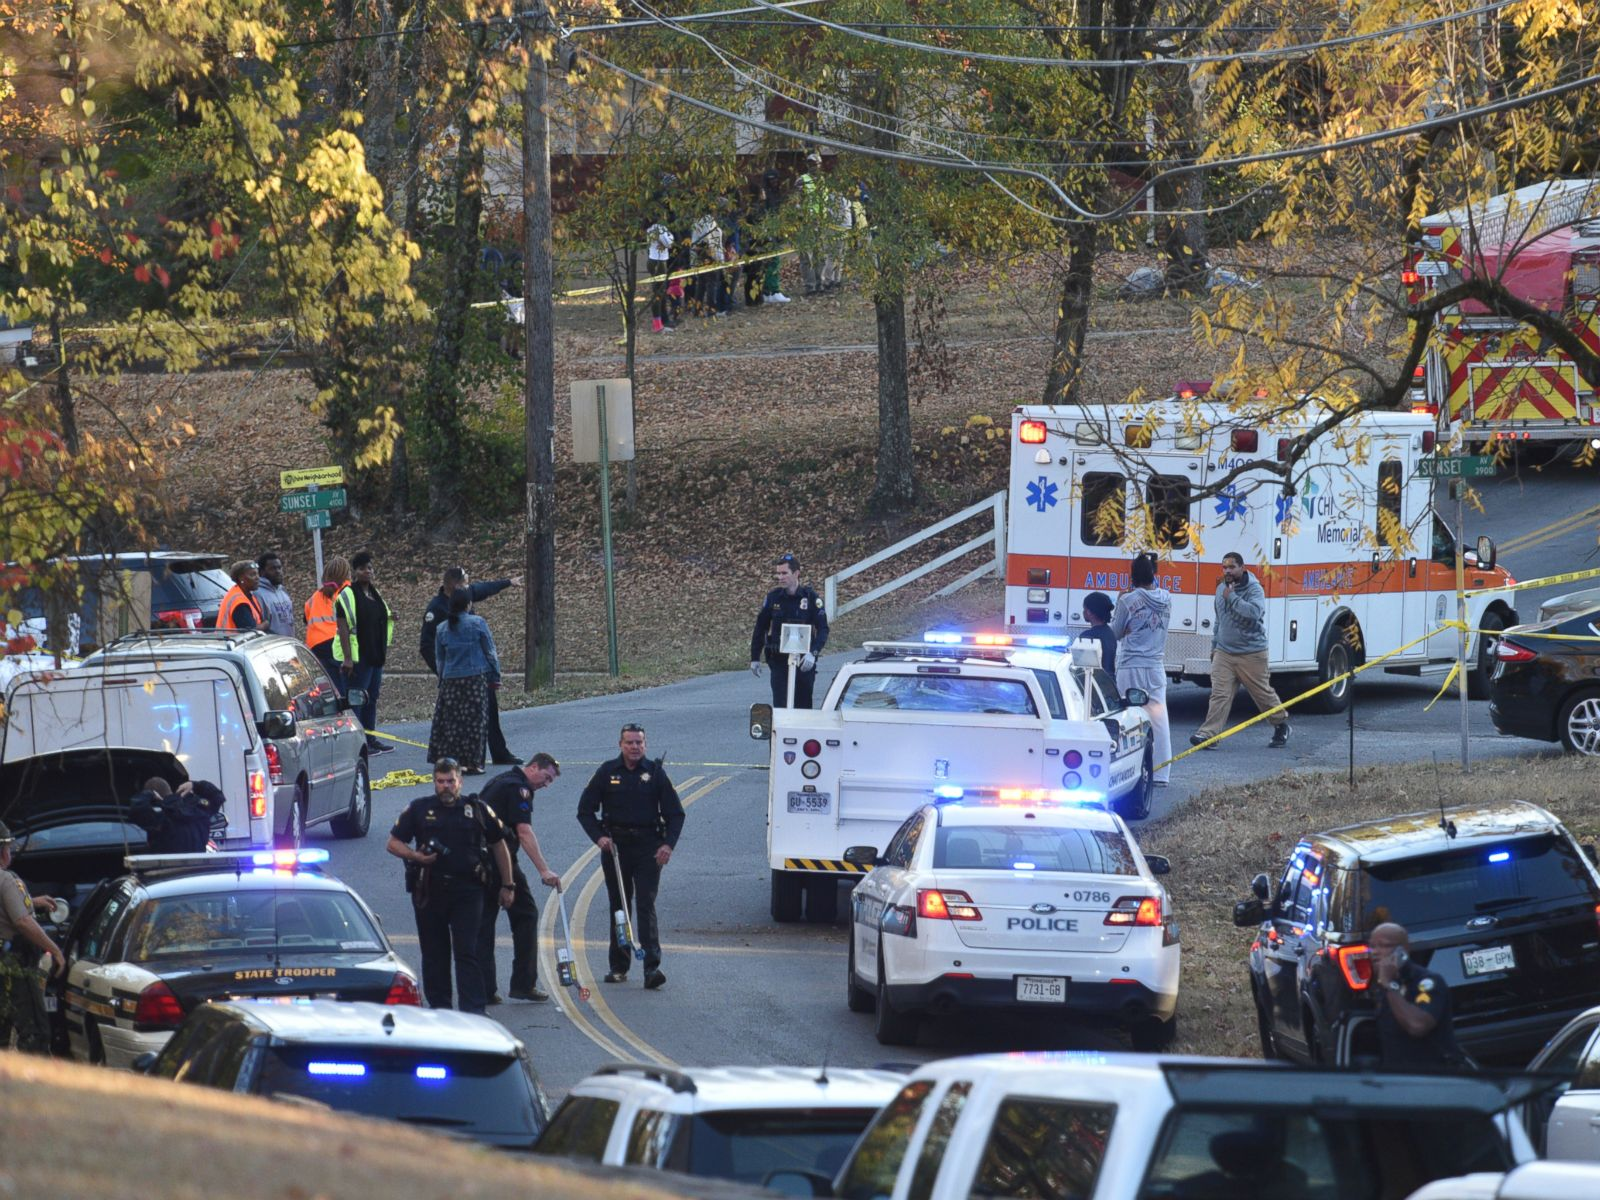 What We Know About the Students Killed, Injured in